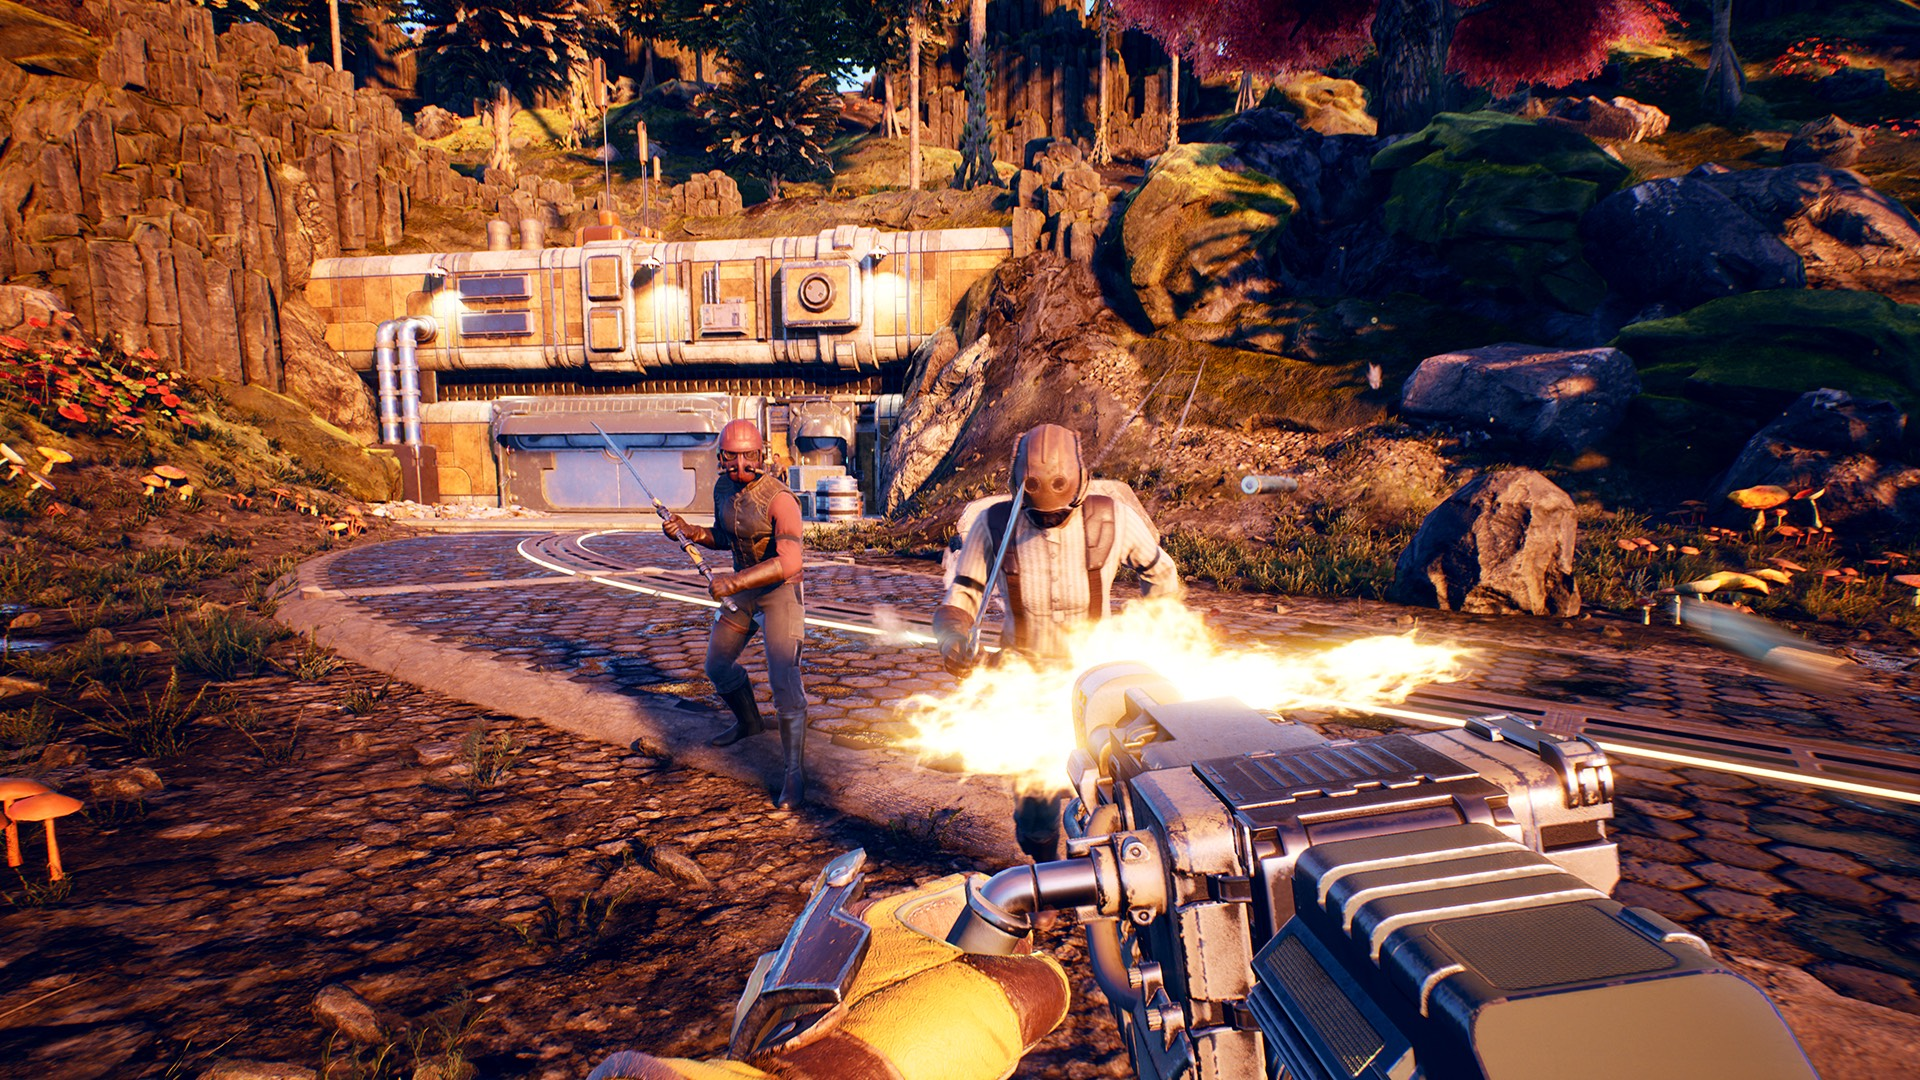 The Outer Worlds Patch 1 3 Adds Font Scaling Ultra Wide Support